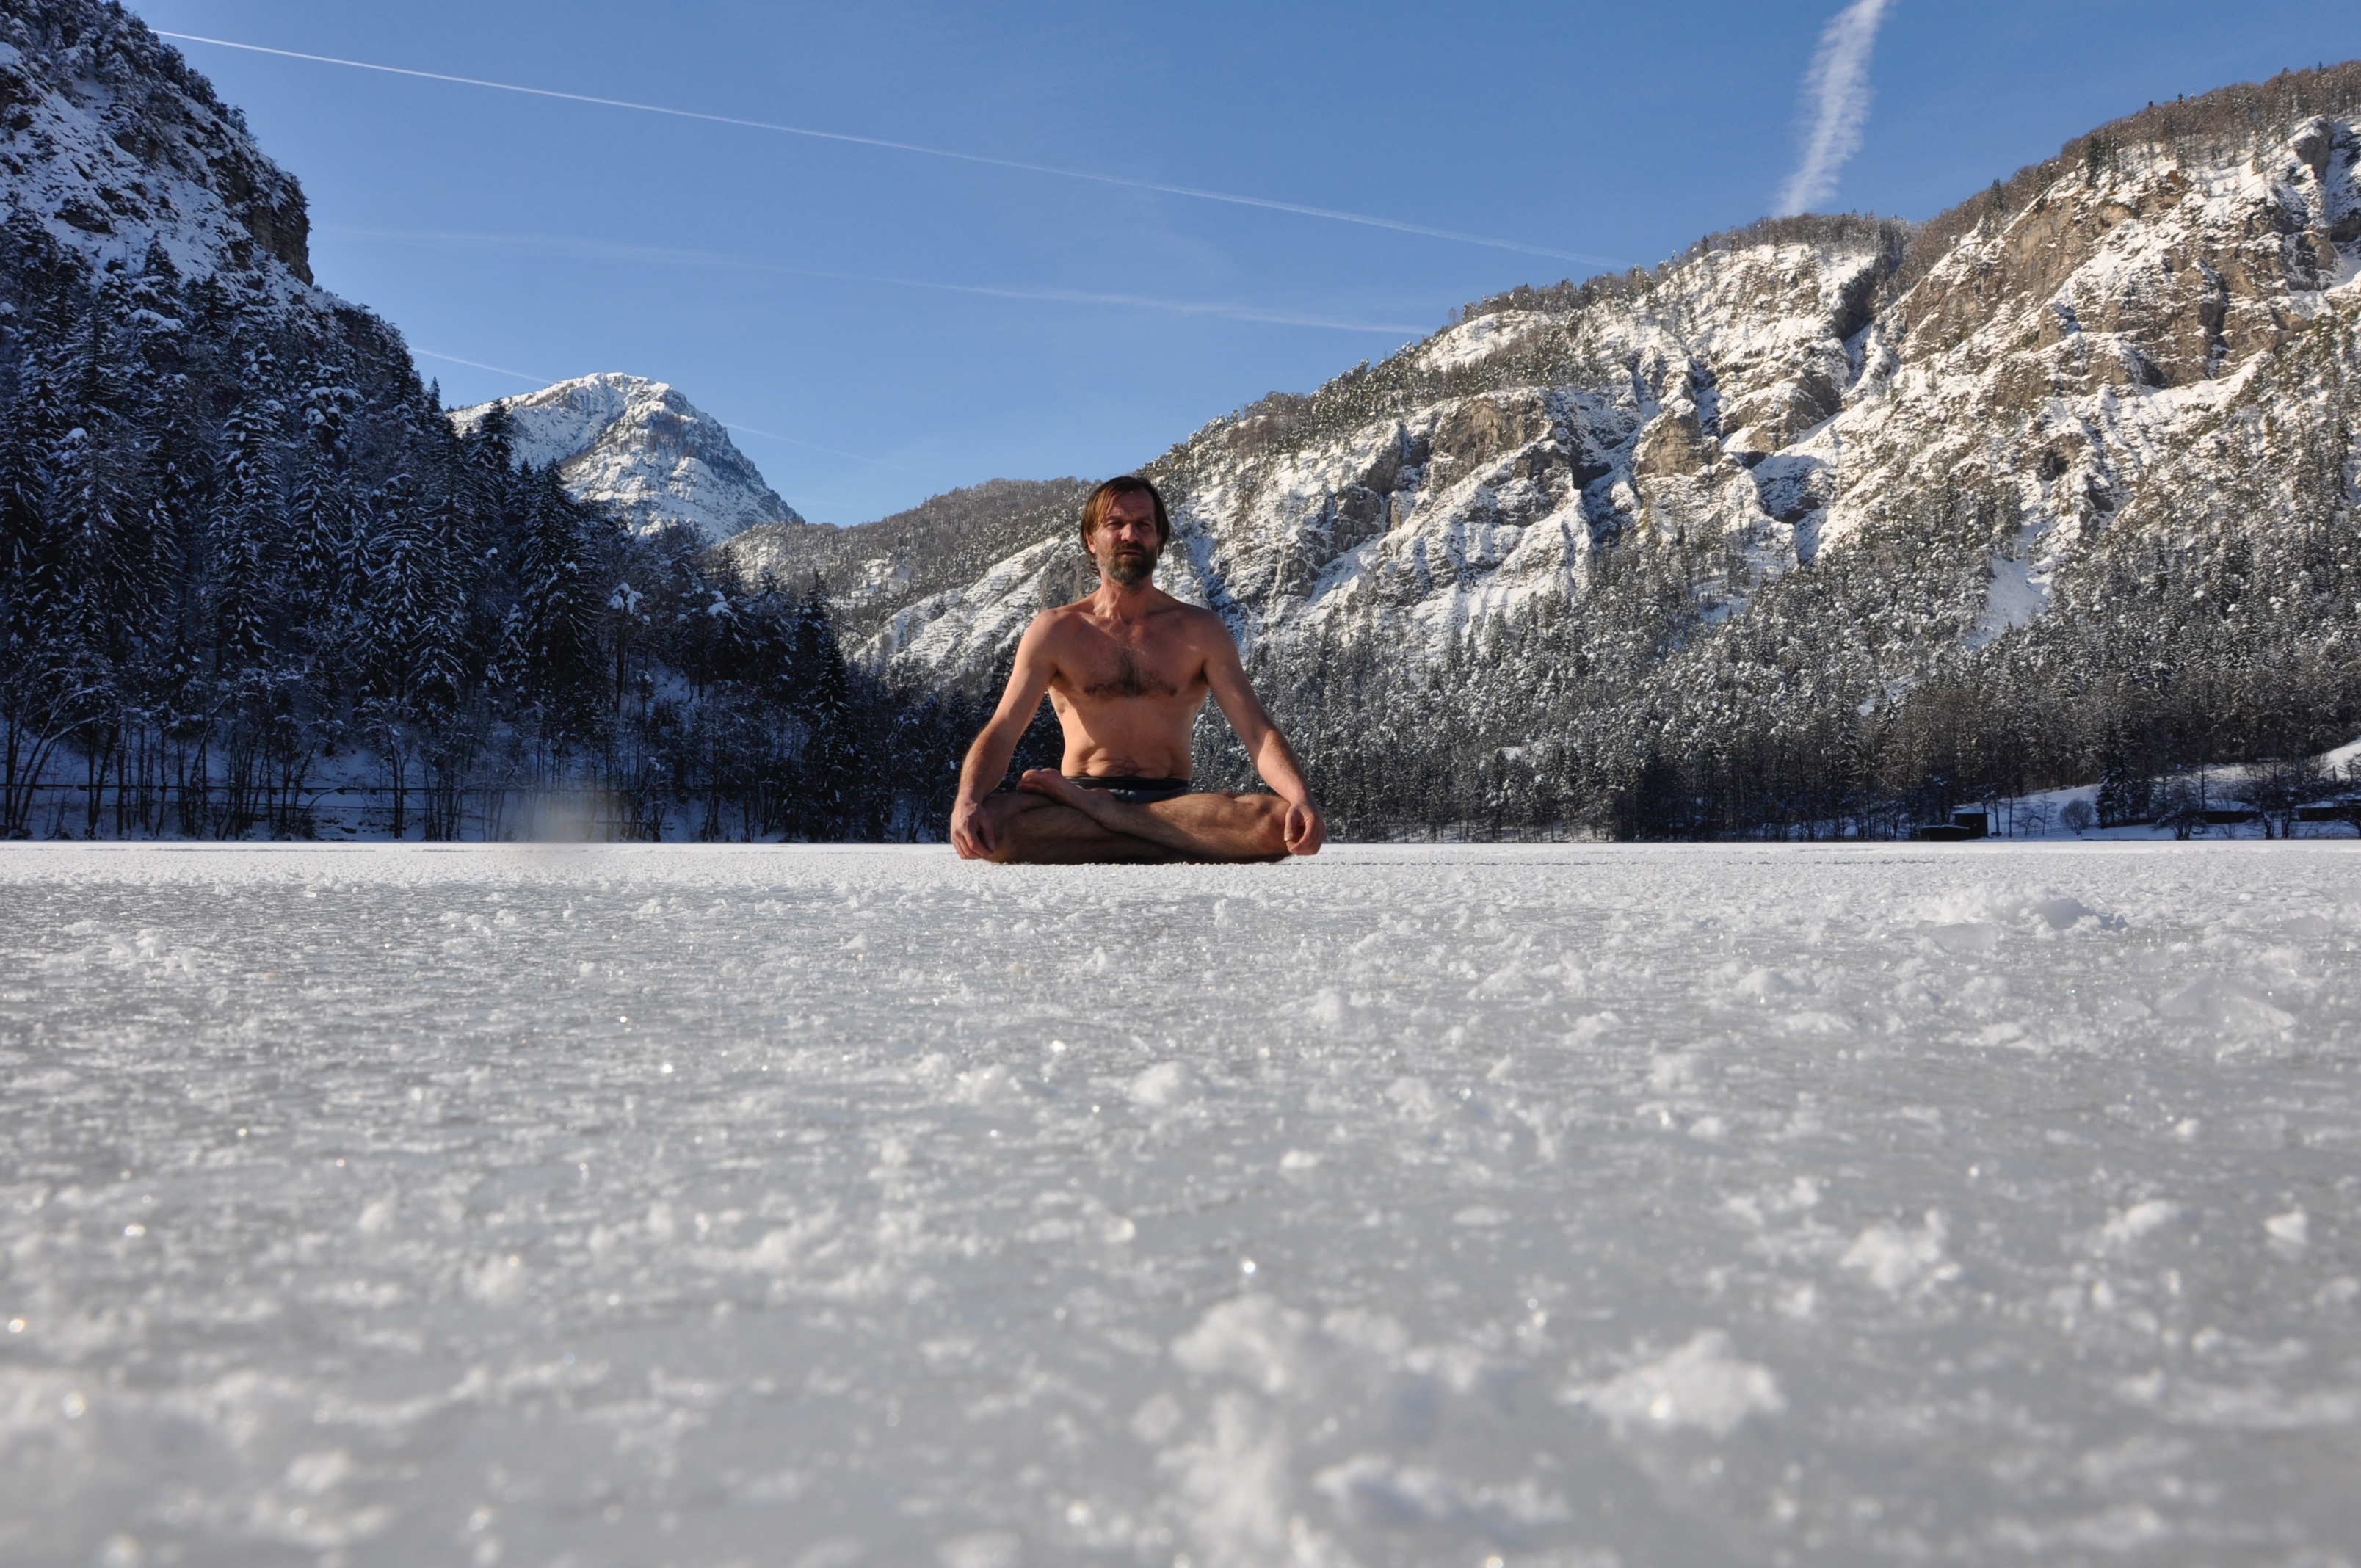 Wim Hof on ice